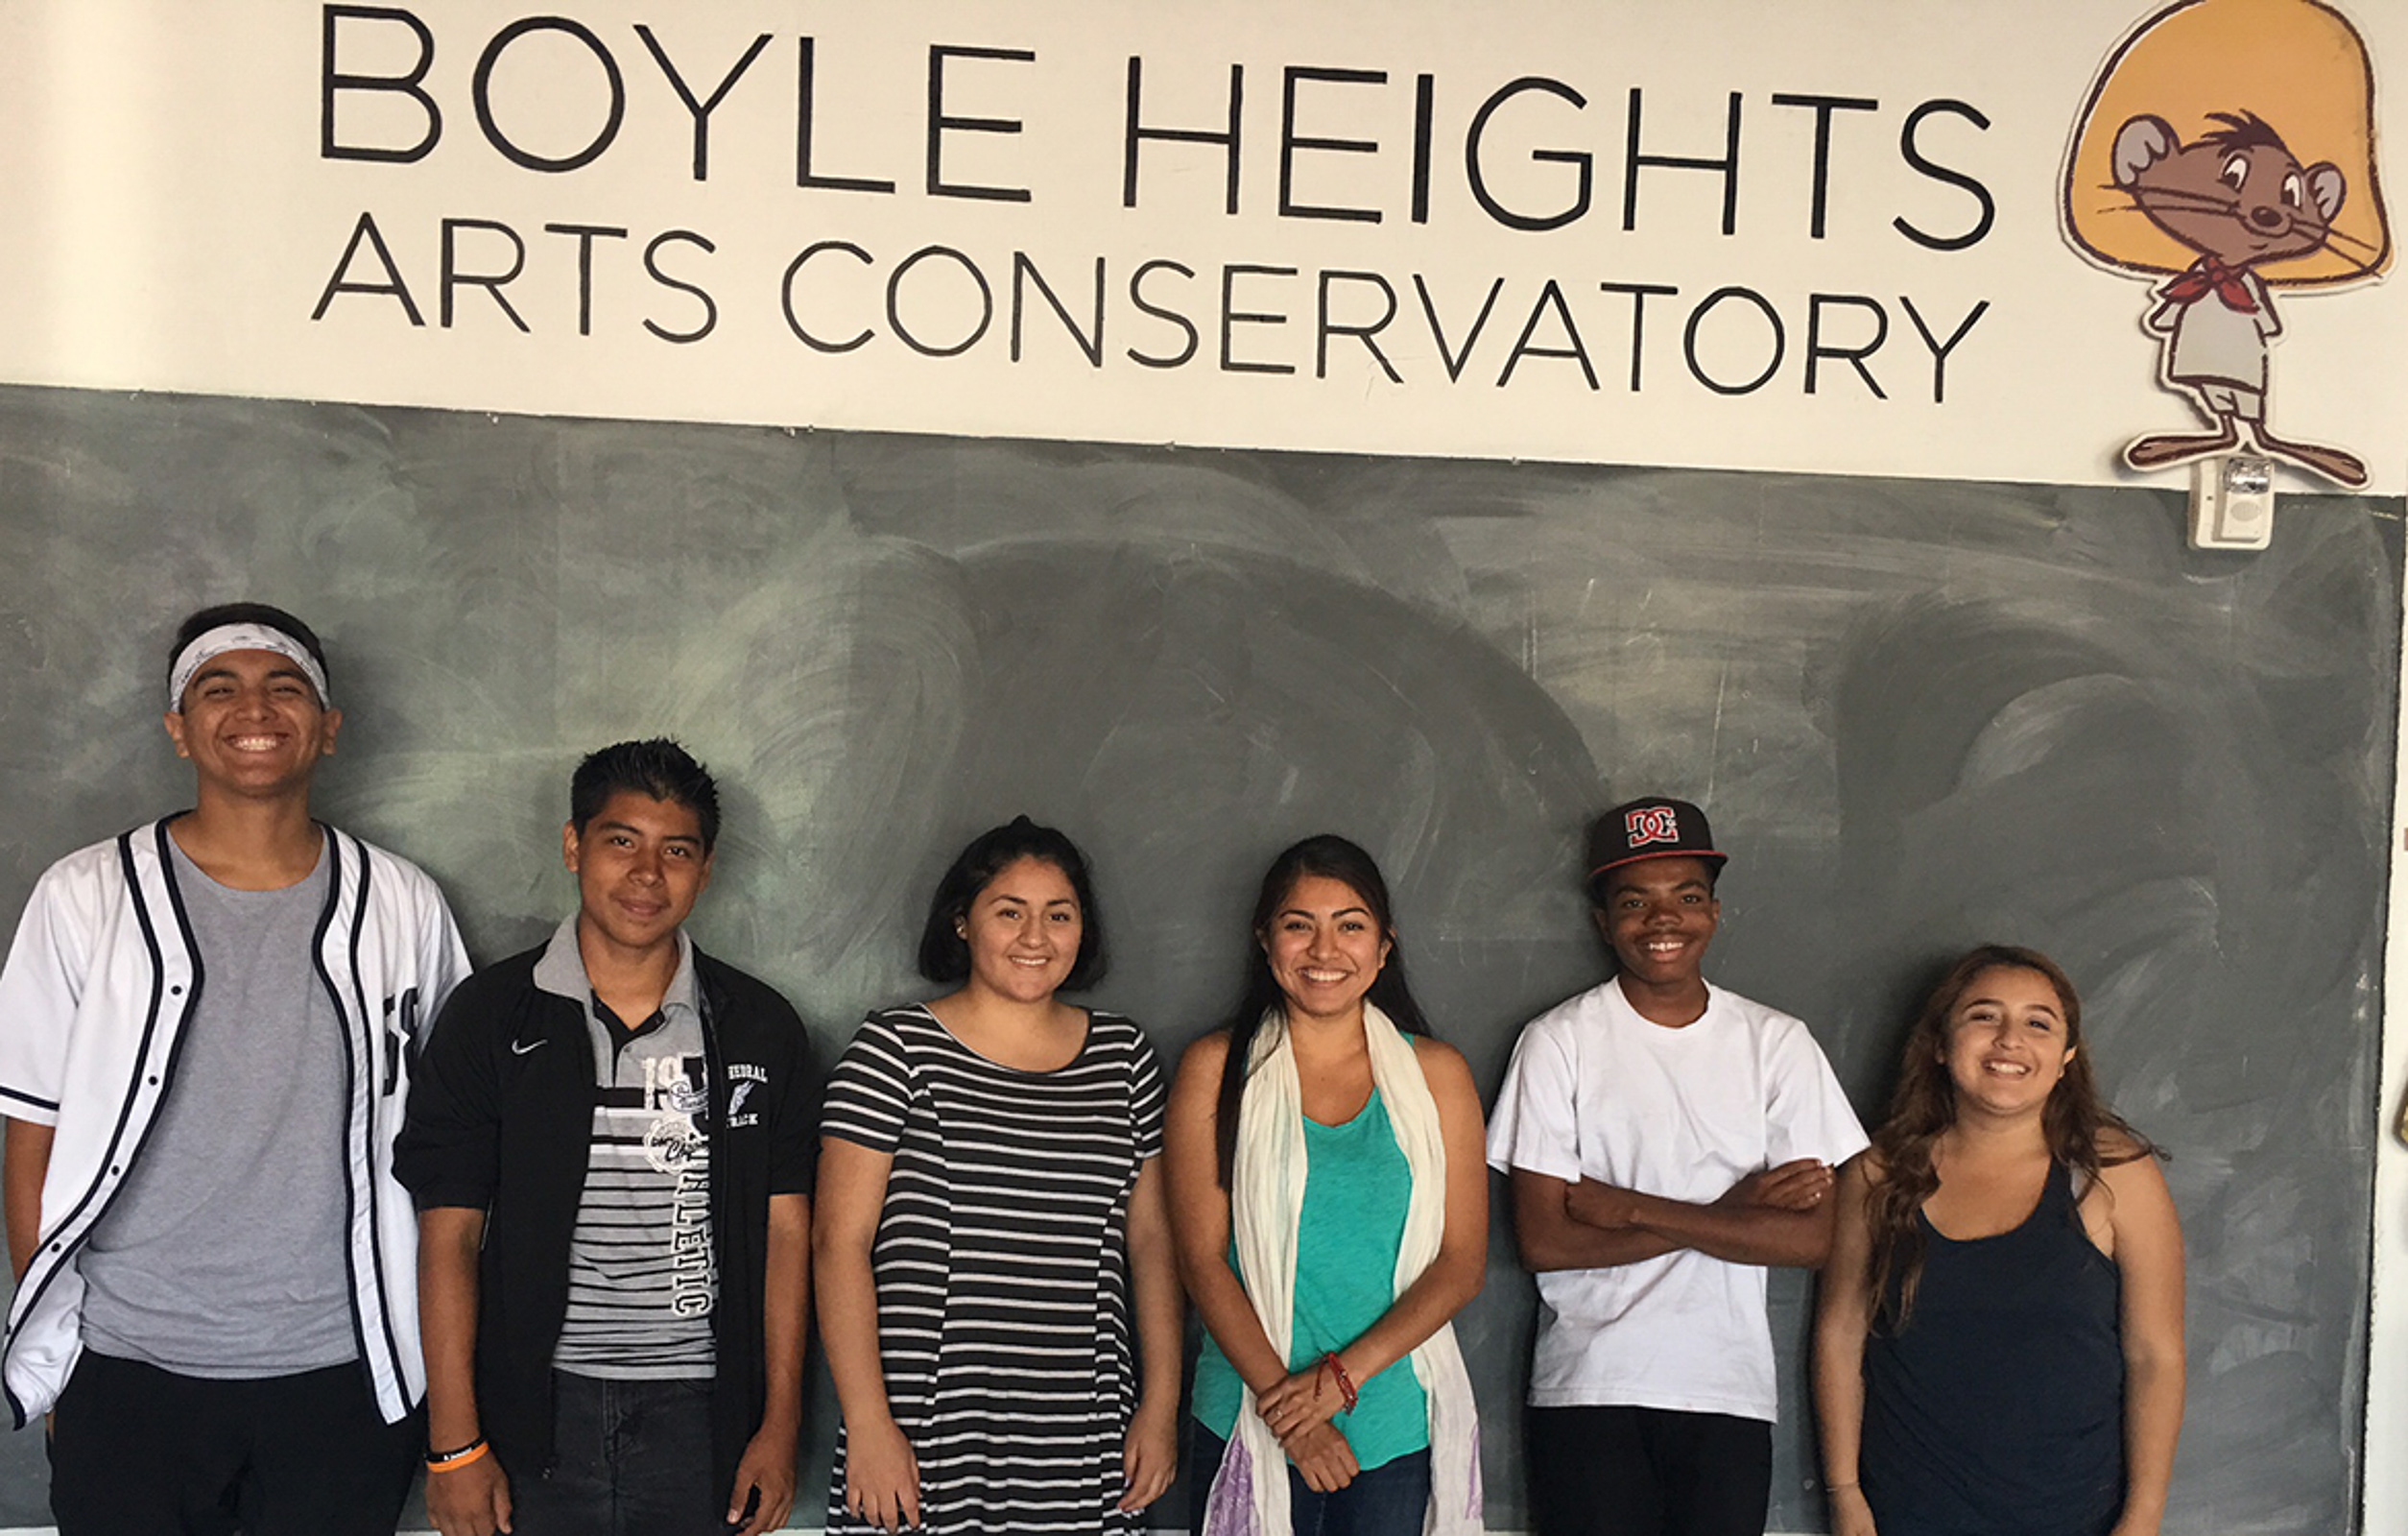 boyle heights arts conservatory  bhac